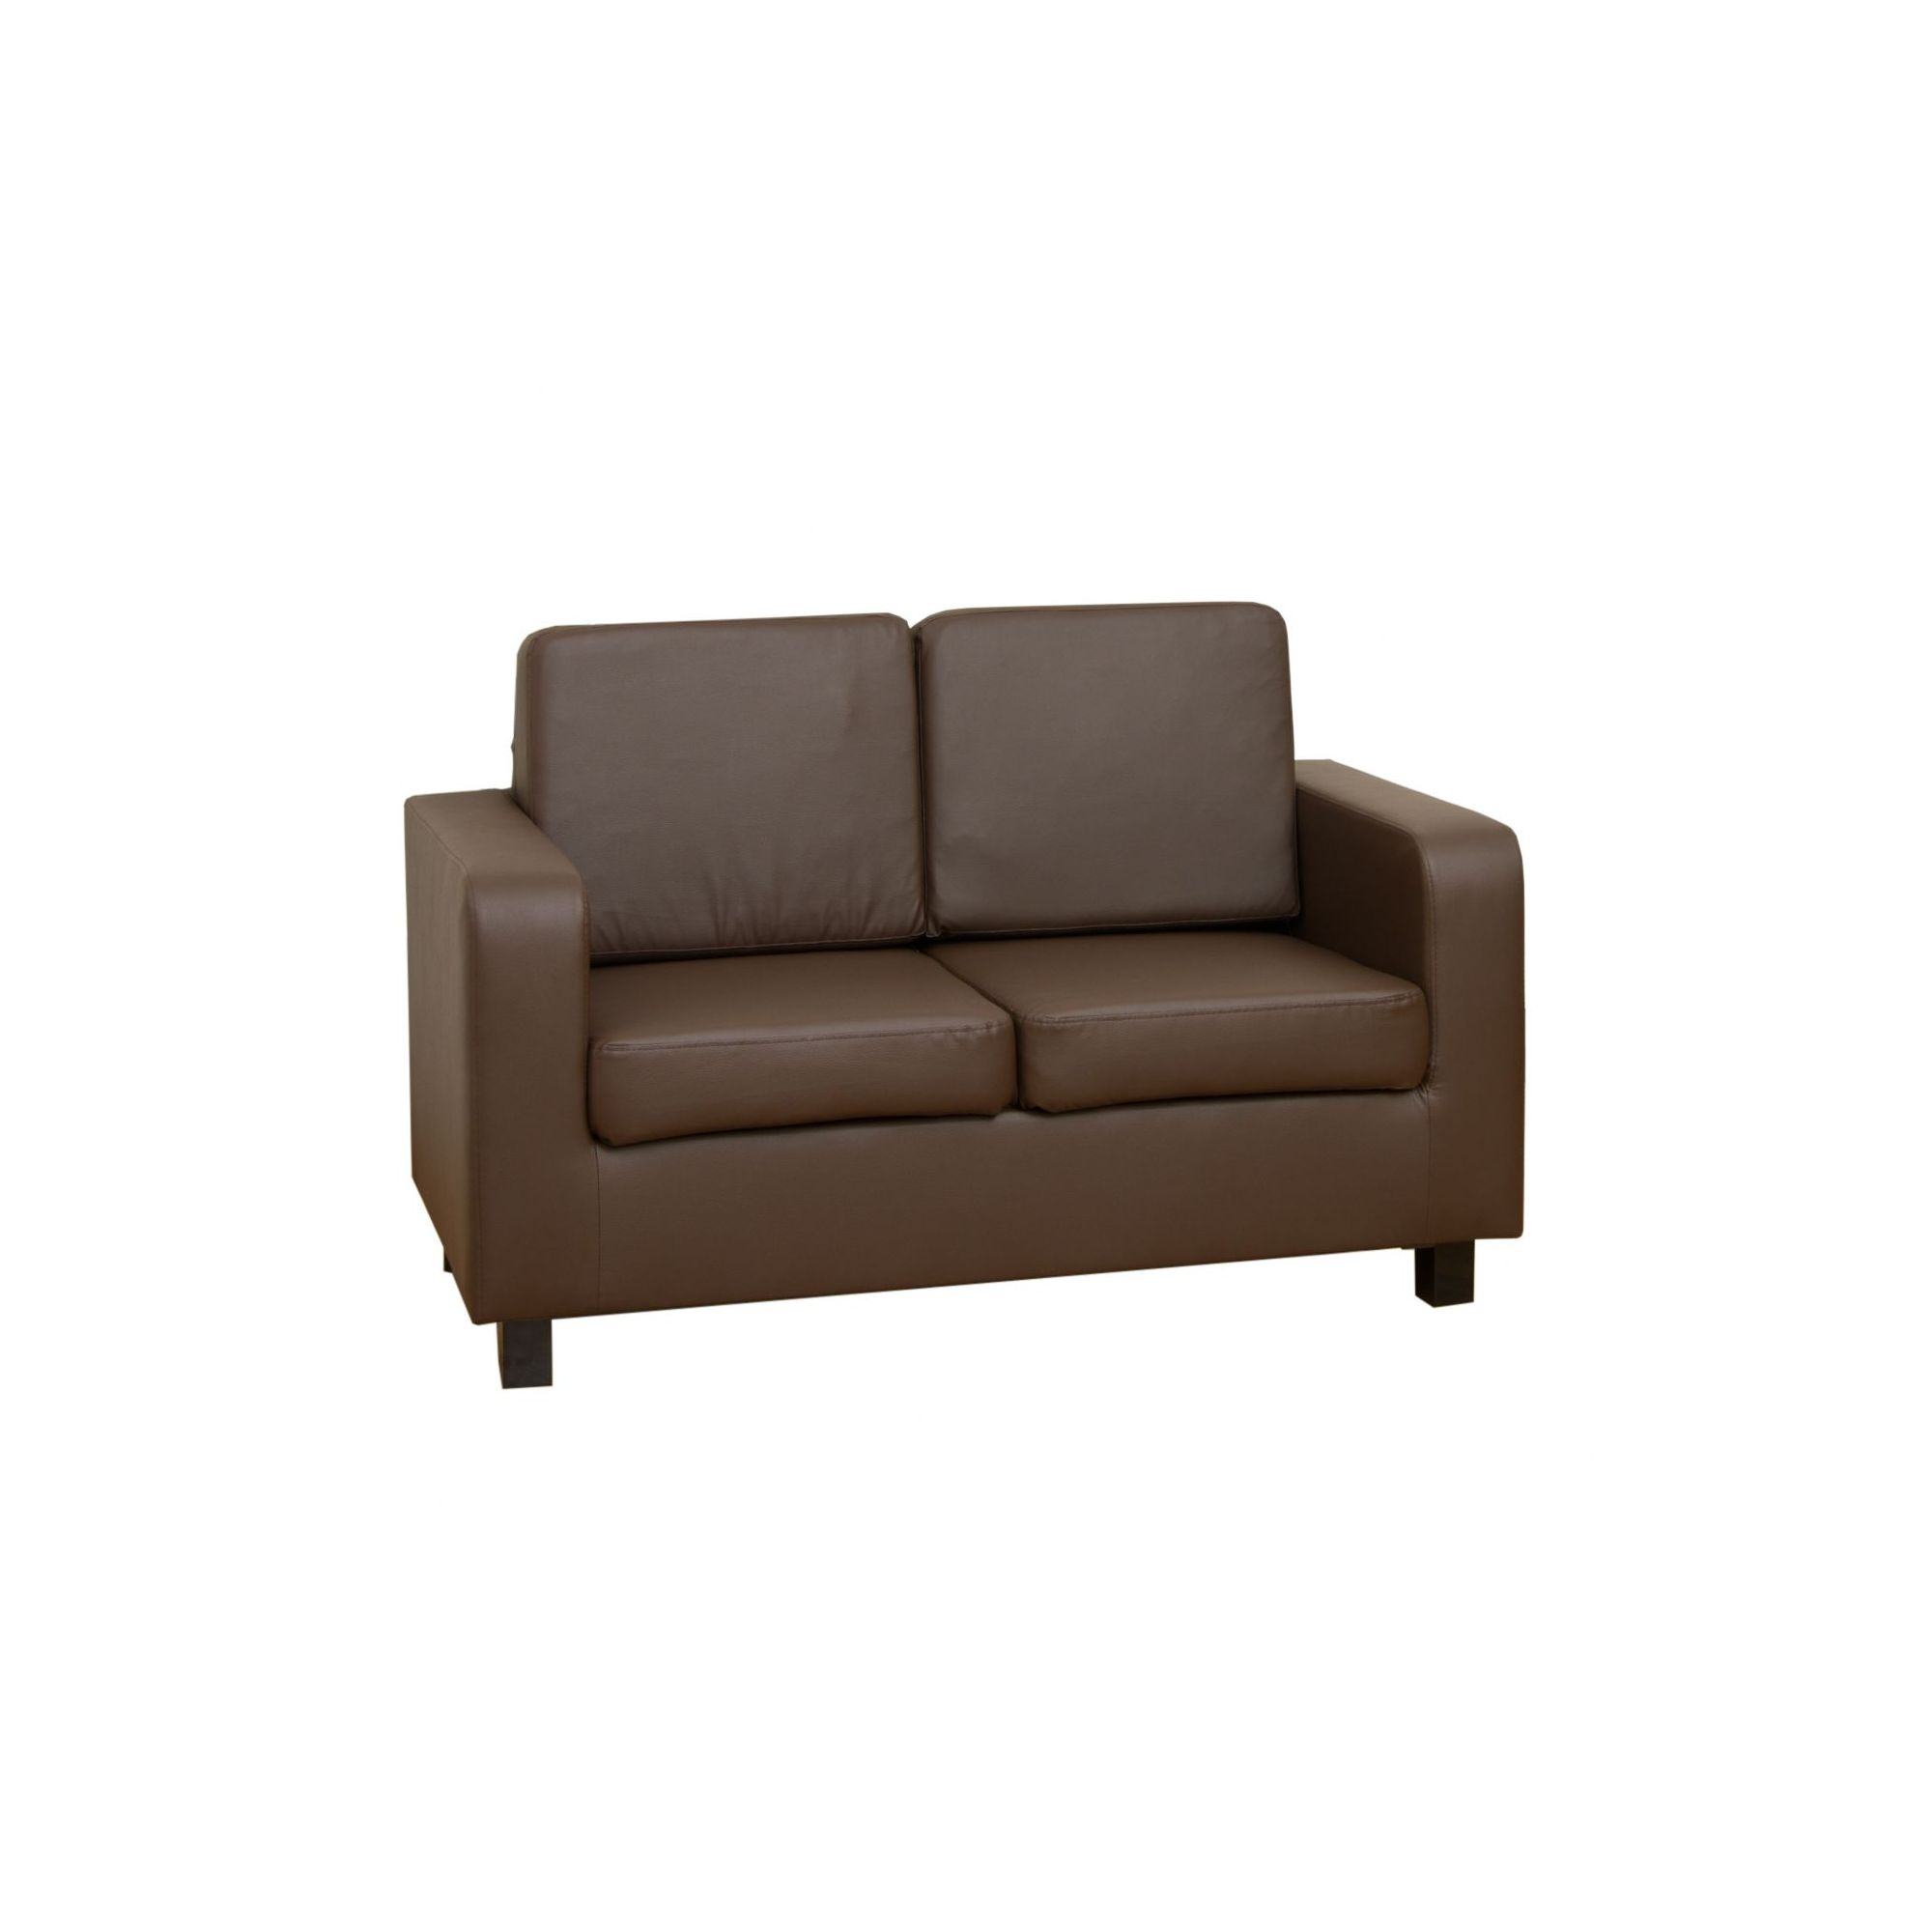 Home And Garden Furniture Sofa Source Rose Bonded Leather 3 Seater Sofa Brown Special Offers